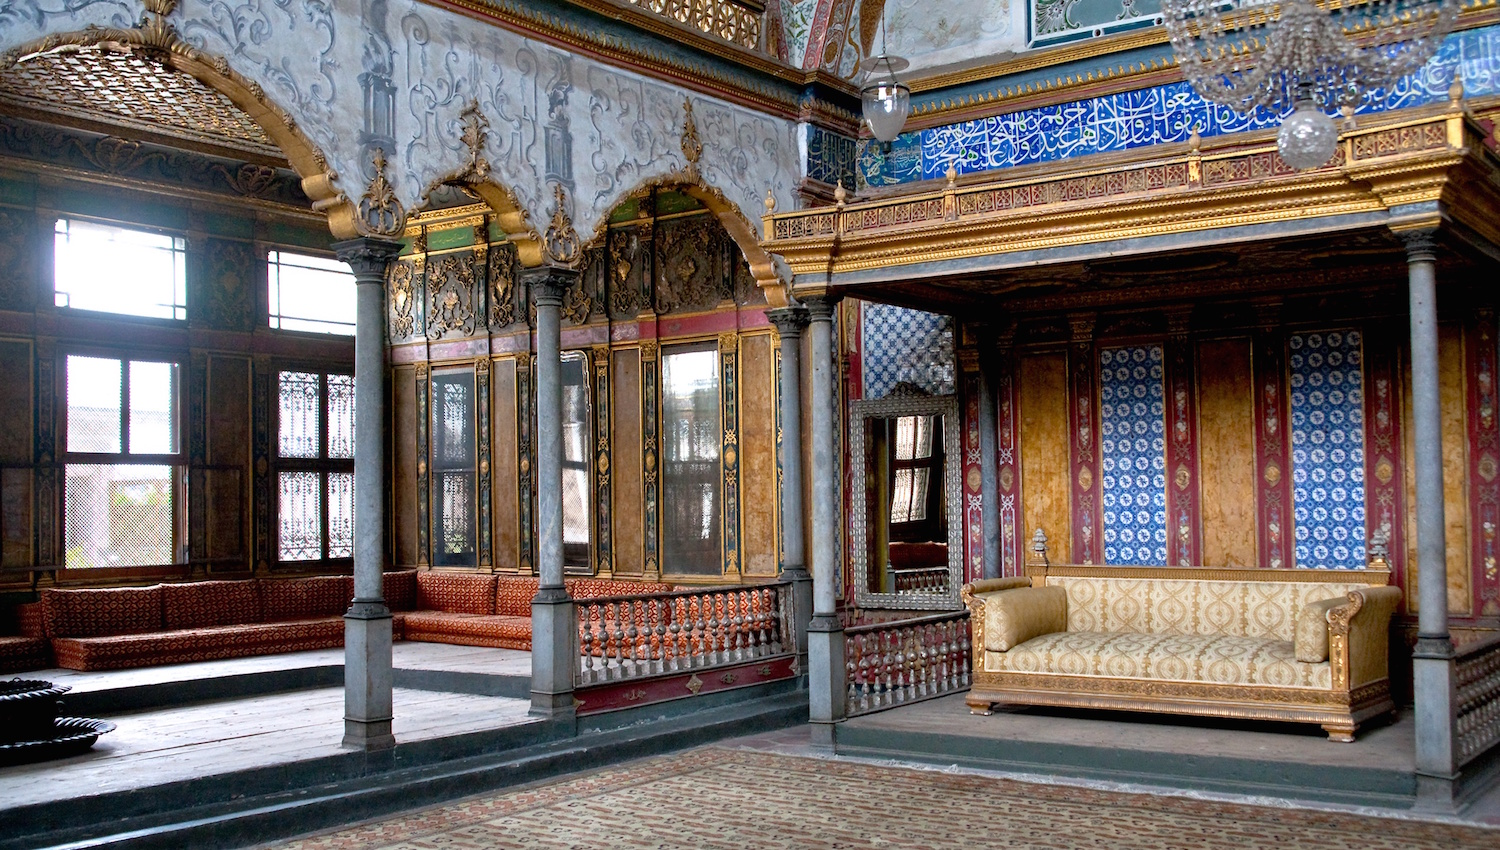 Visit the Topkapi Palace harem